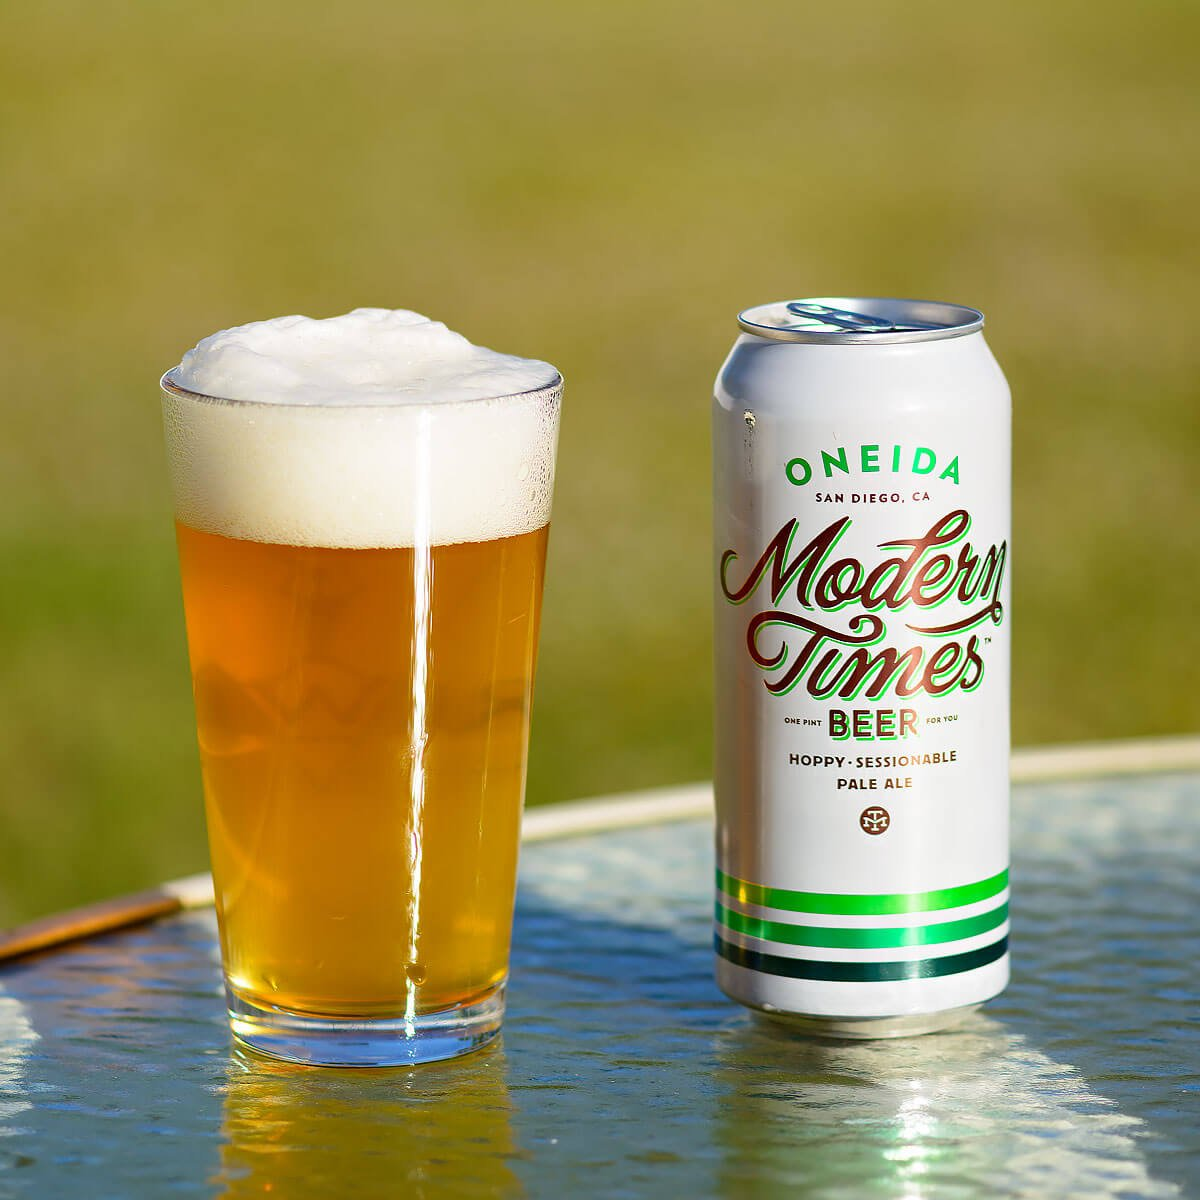 Oneida, an American Pale Ale by Modern Times Beer